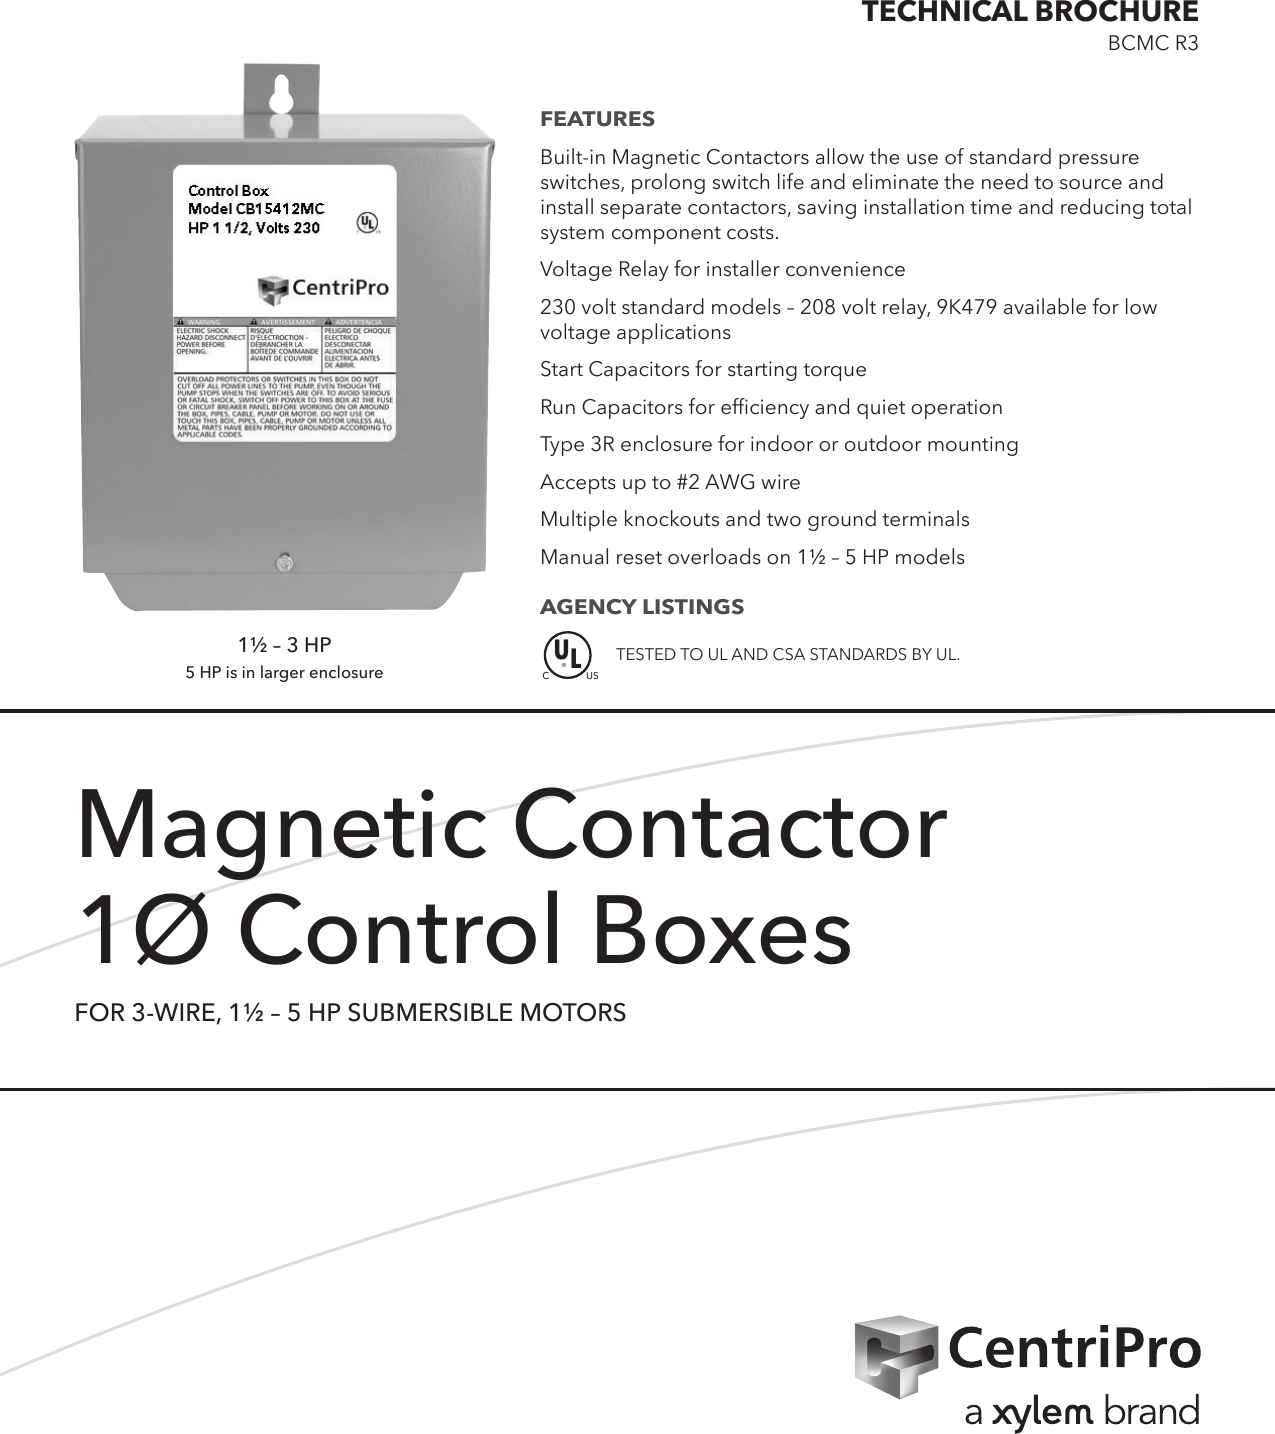 548699 1 Goulds 3 Wire Magnetic Contactor Brochure on